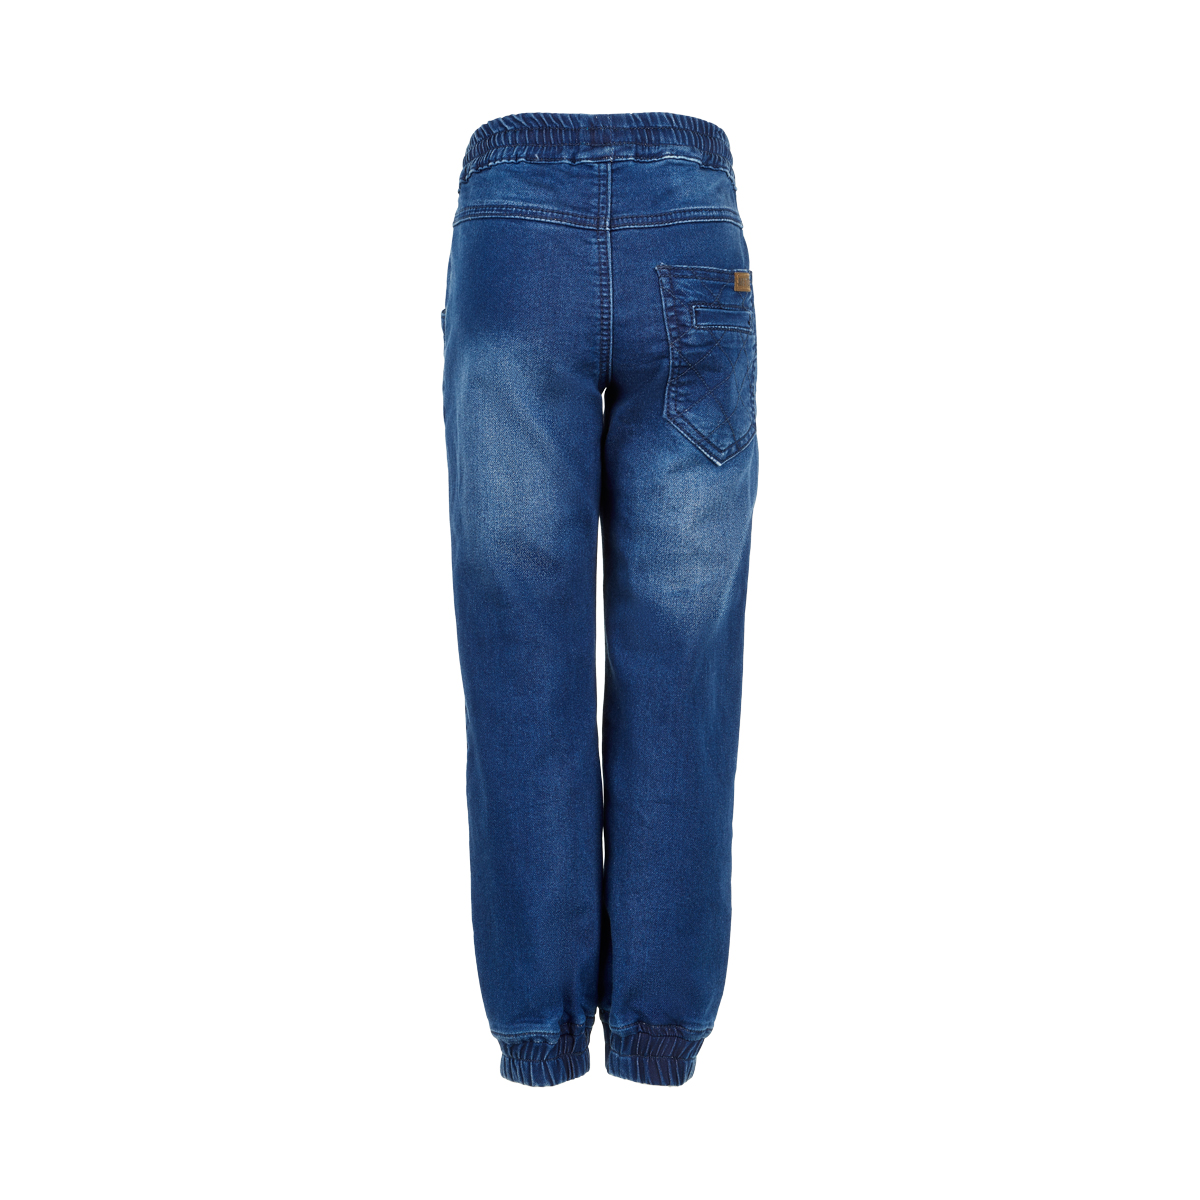 a4747a28d9c Mike 370 Pants Sweat Jeans Barn Me Too back ...